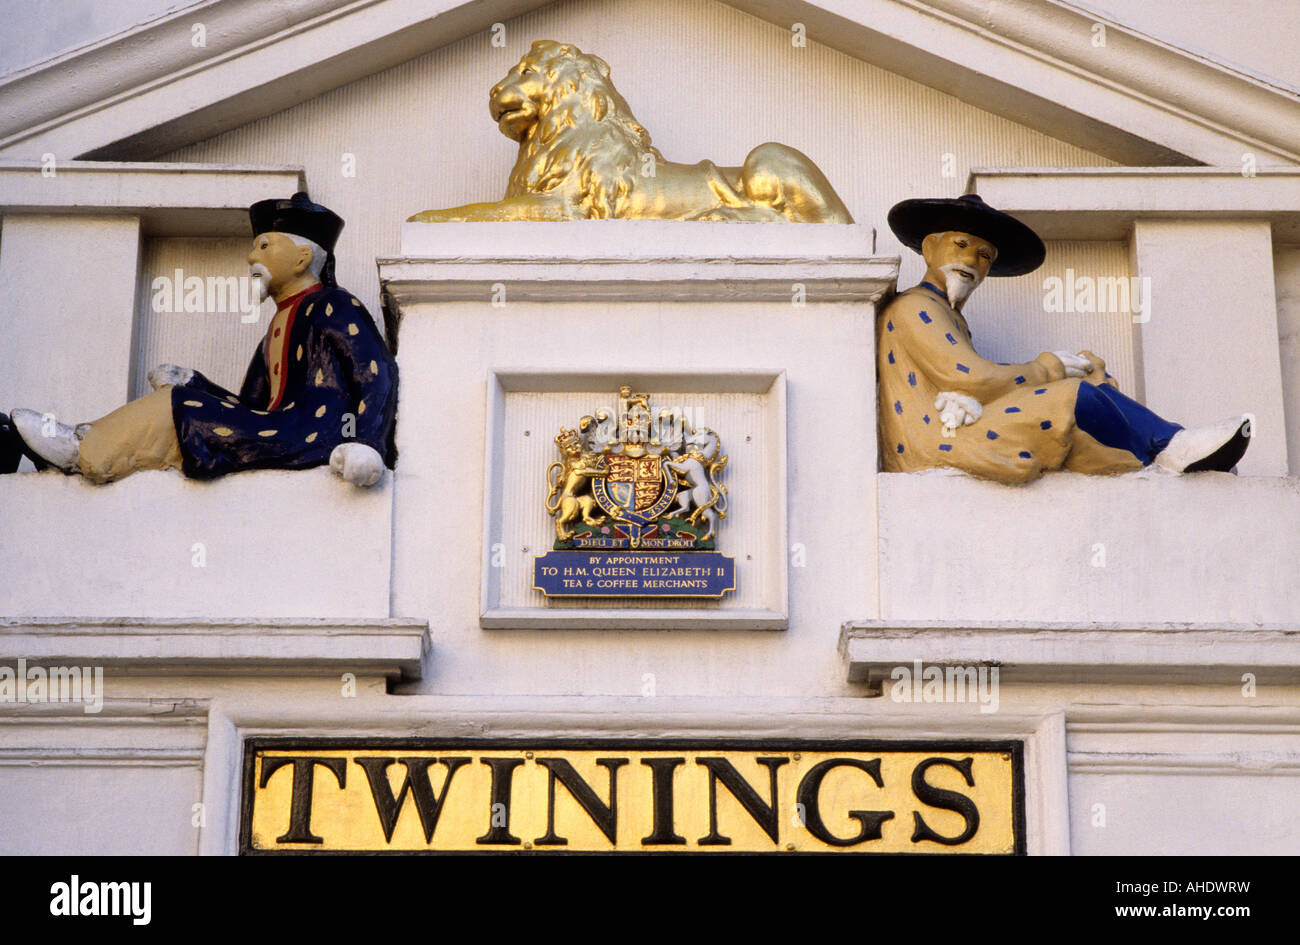 Strand London Twinings Tea Royal Warrant Tea Merchants - Stock Image